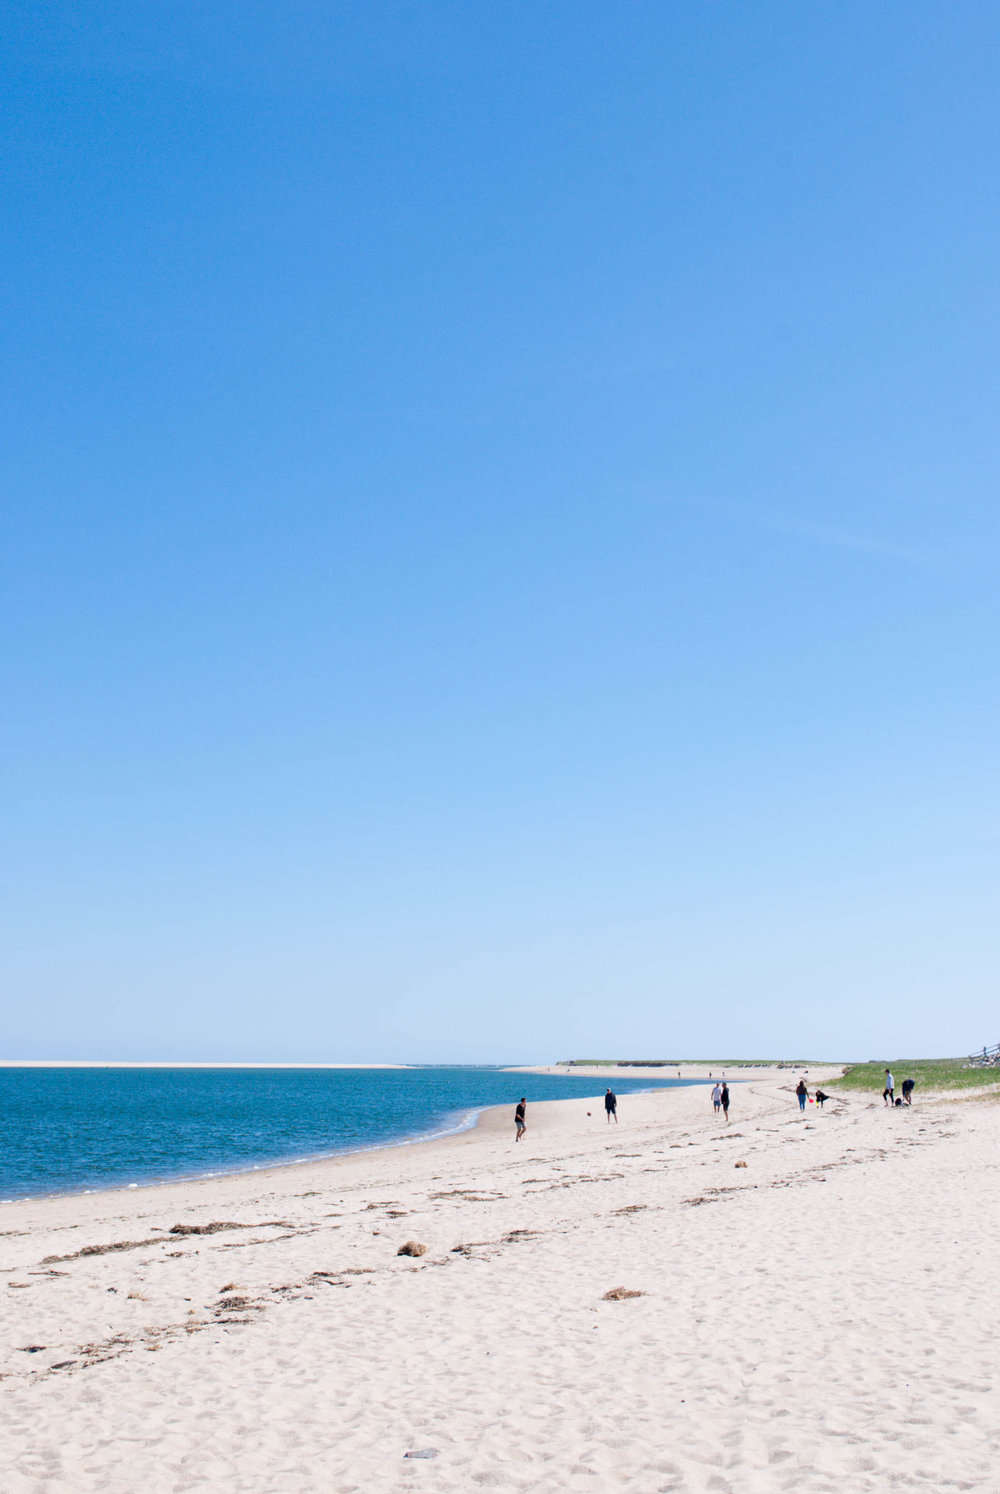 Beach Chatham, Massachusetts — Thinking of taking a Cape Cod vacation? Stay in Chatham, Massachusetts for a relaxing beach vacation with your family and friends. This travel guide will tell you how to get there, where to stay, what to do, and what to eat!